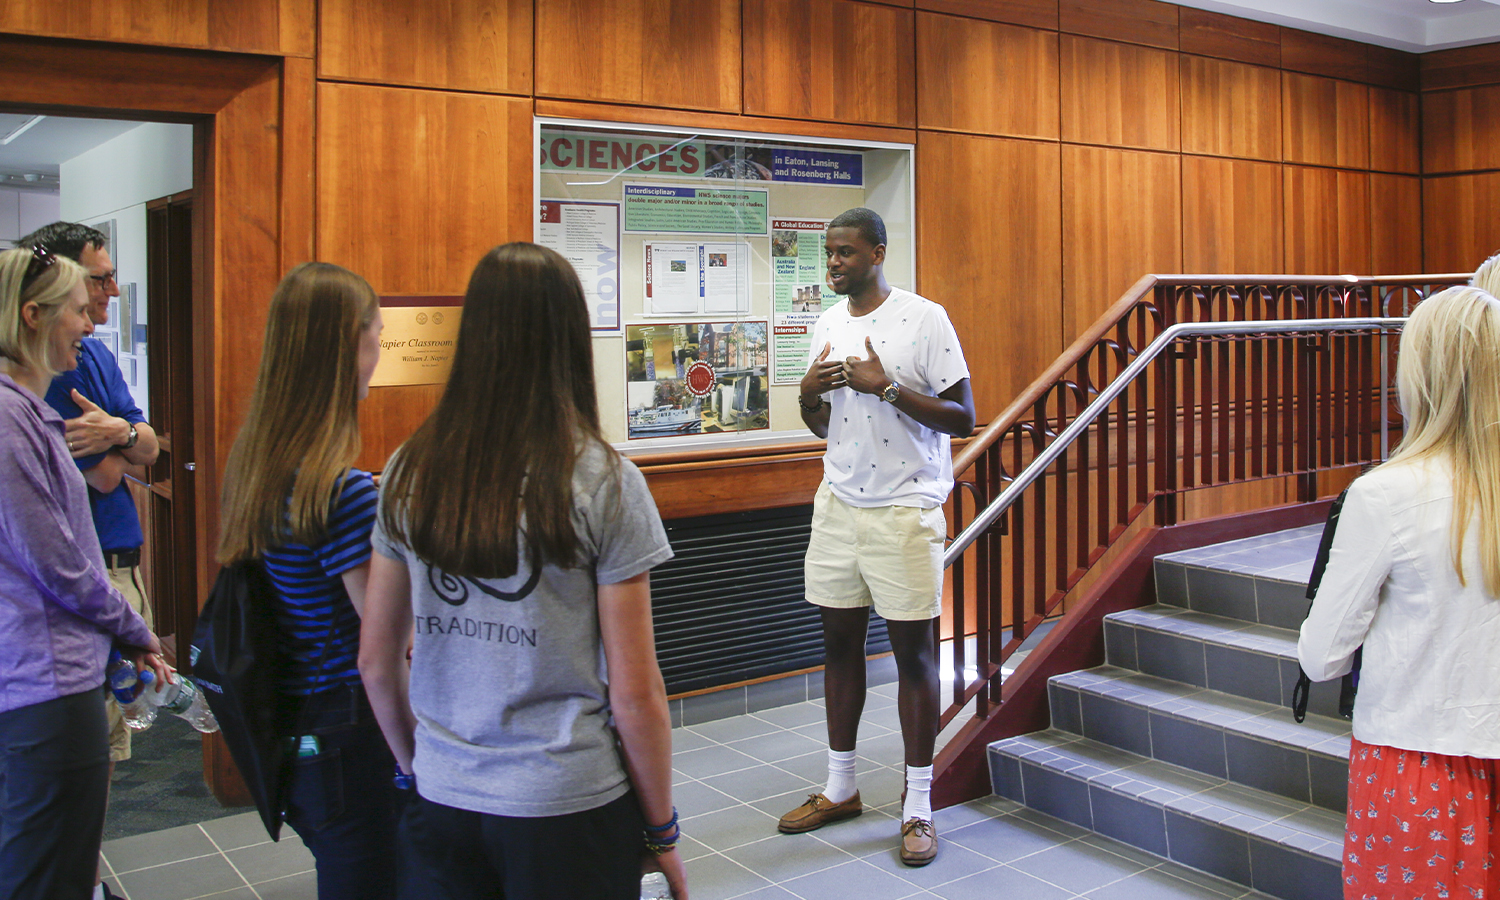 In Napier Hall, Edens Fleurizard '20 chats with prospective students and their families about research oppotunites at HWS during a campus tour.